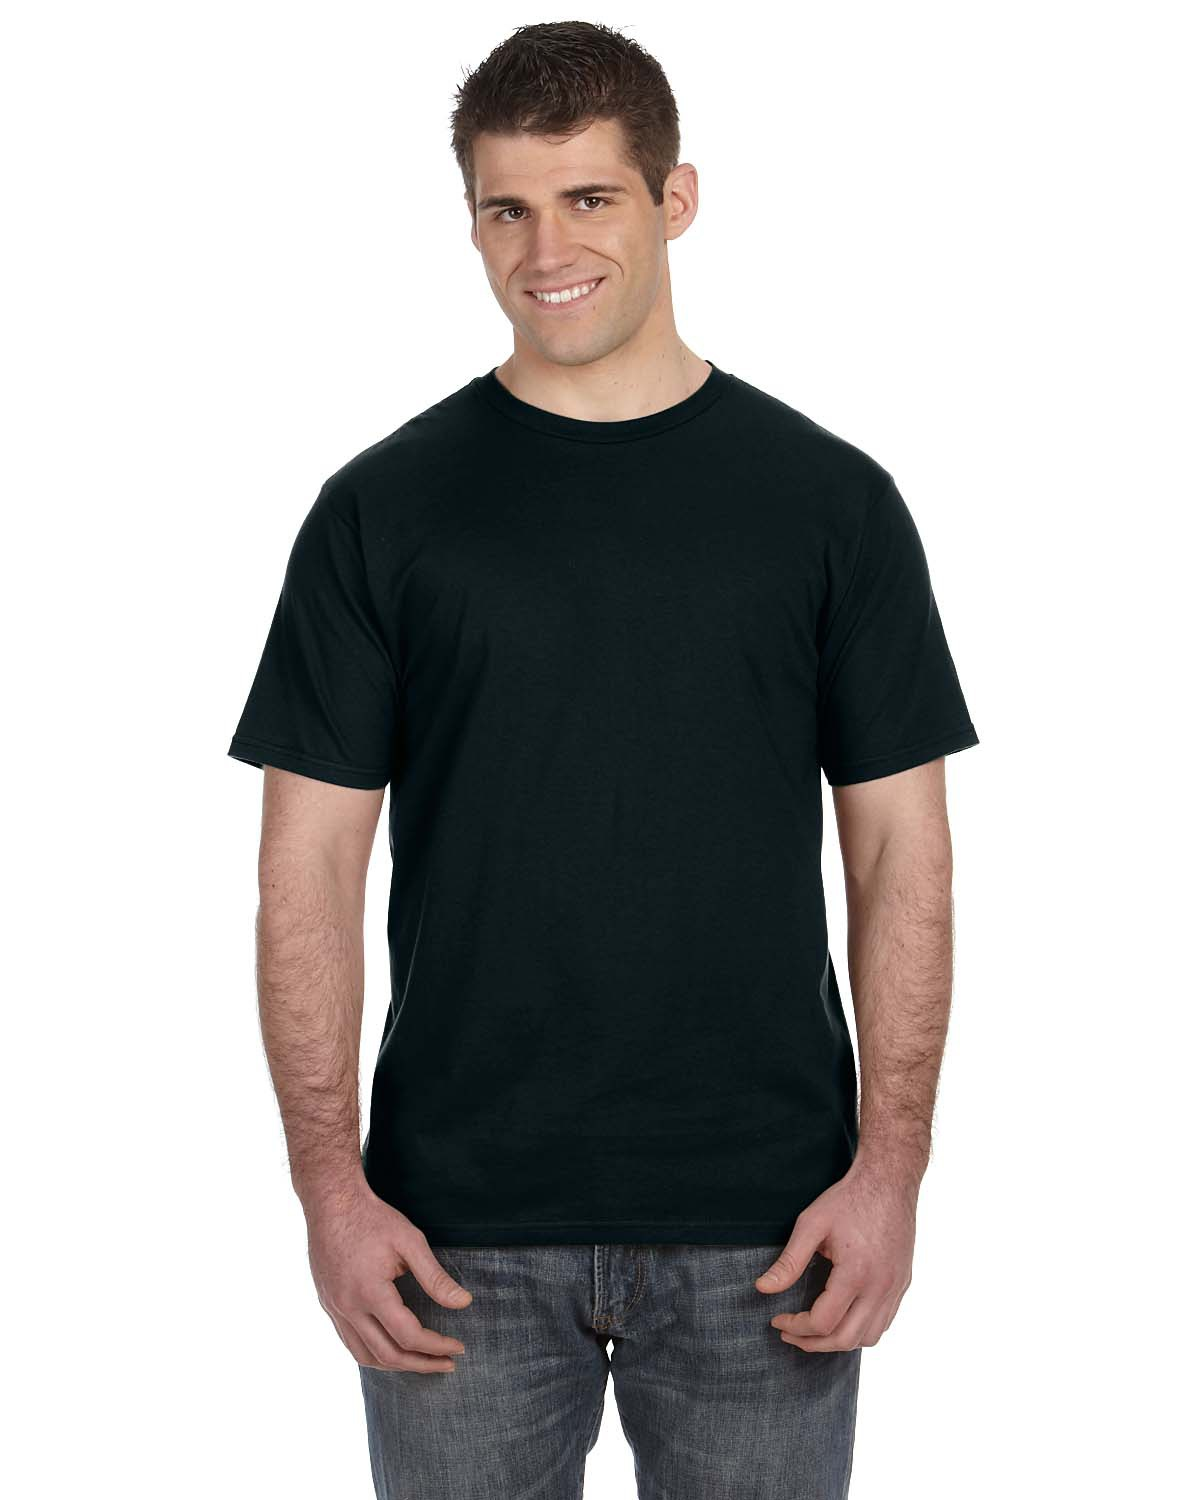 Anvil 980  4.5 oz. Ringspun Cotton Short-Sleeve T-Shirt